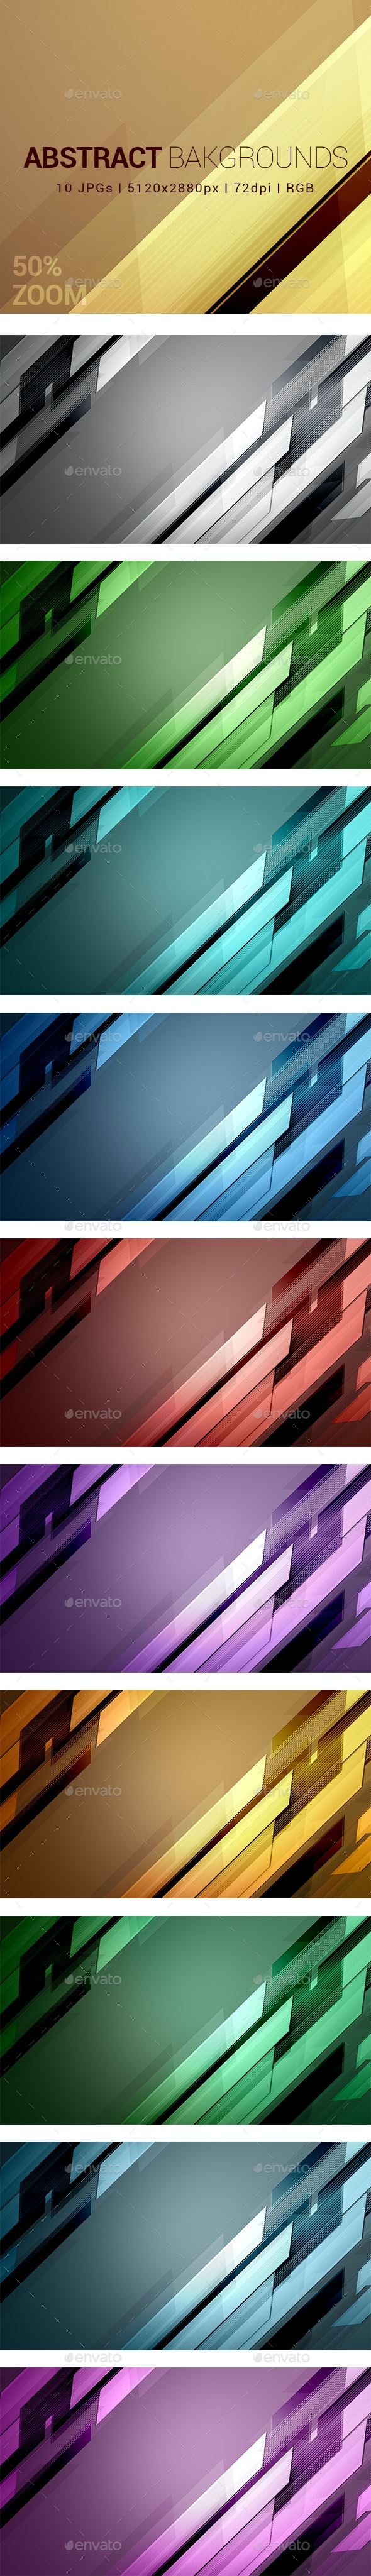 10 Abstract Backgrounds Vol 7 - Abstract Backgrounds